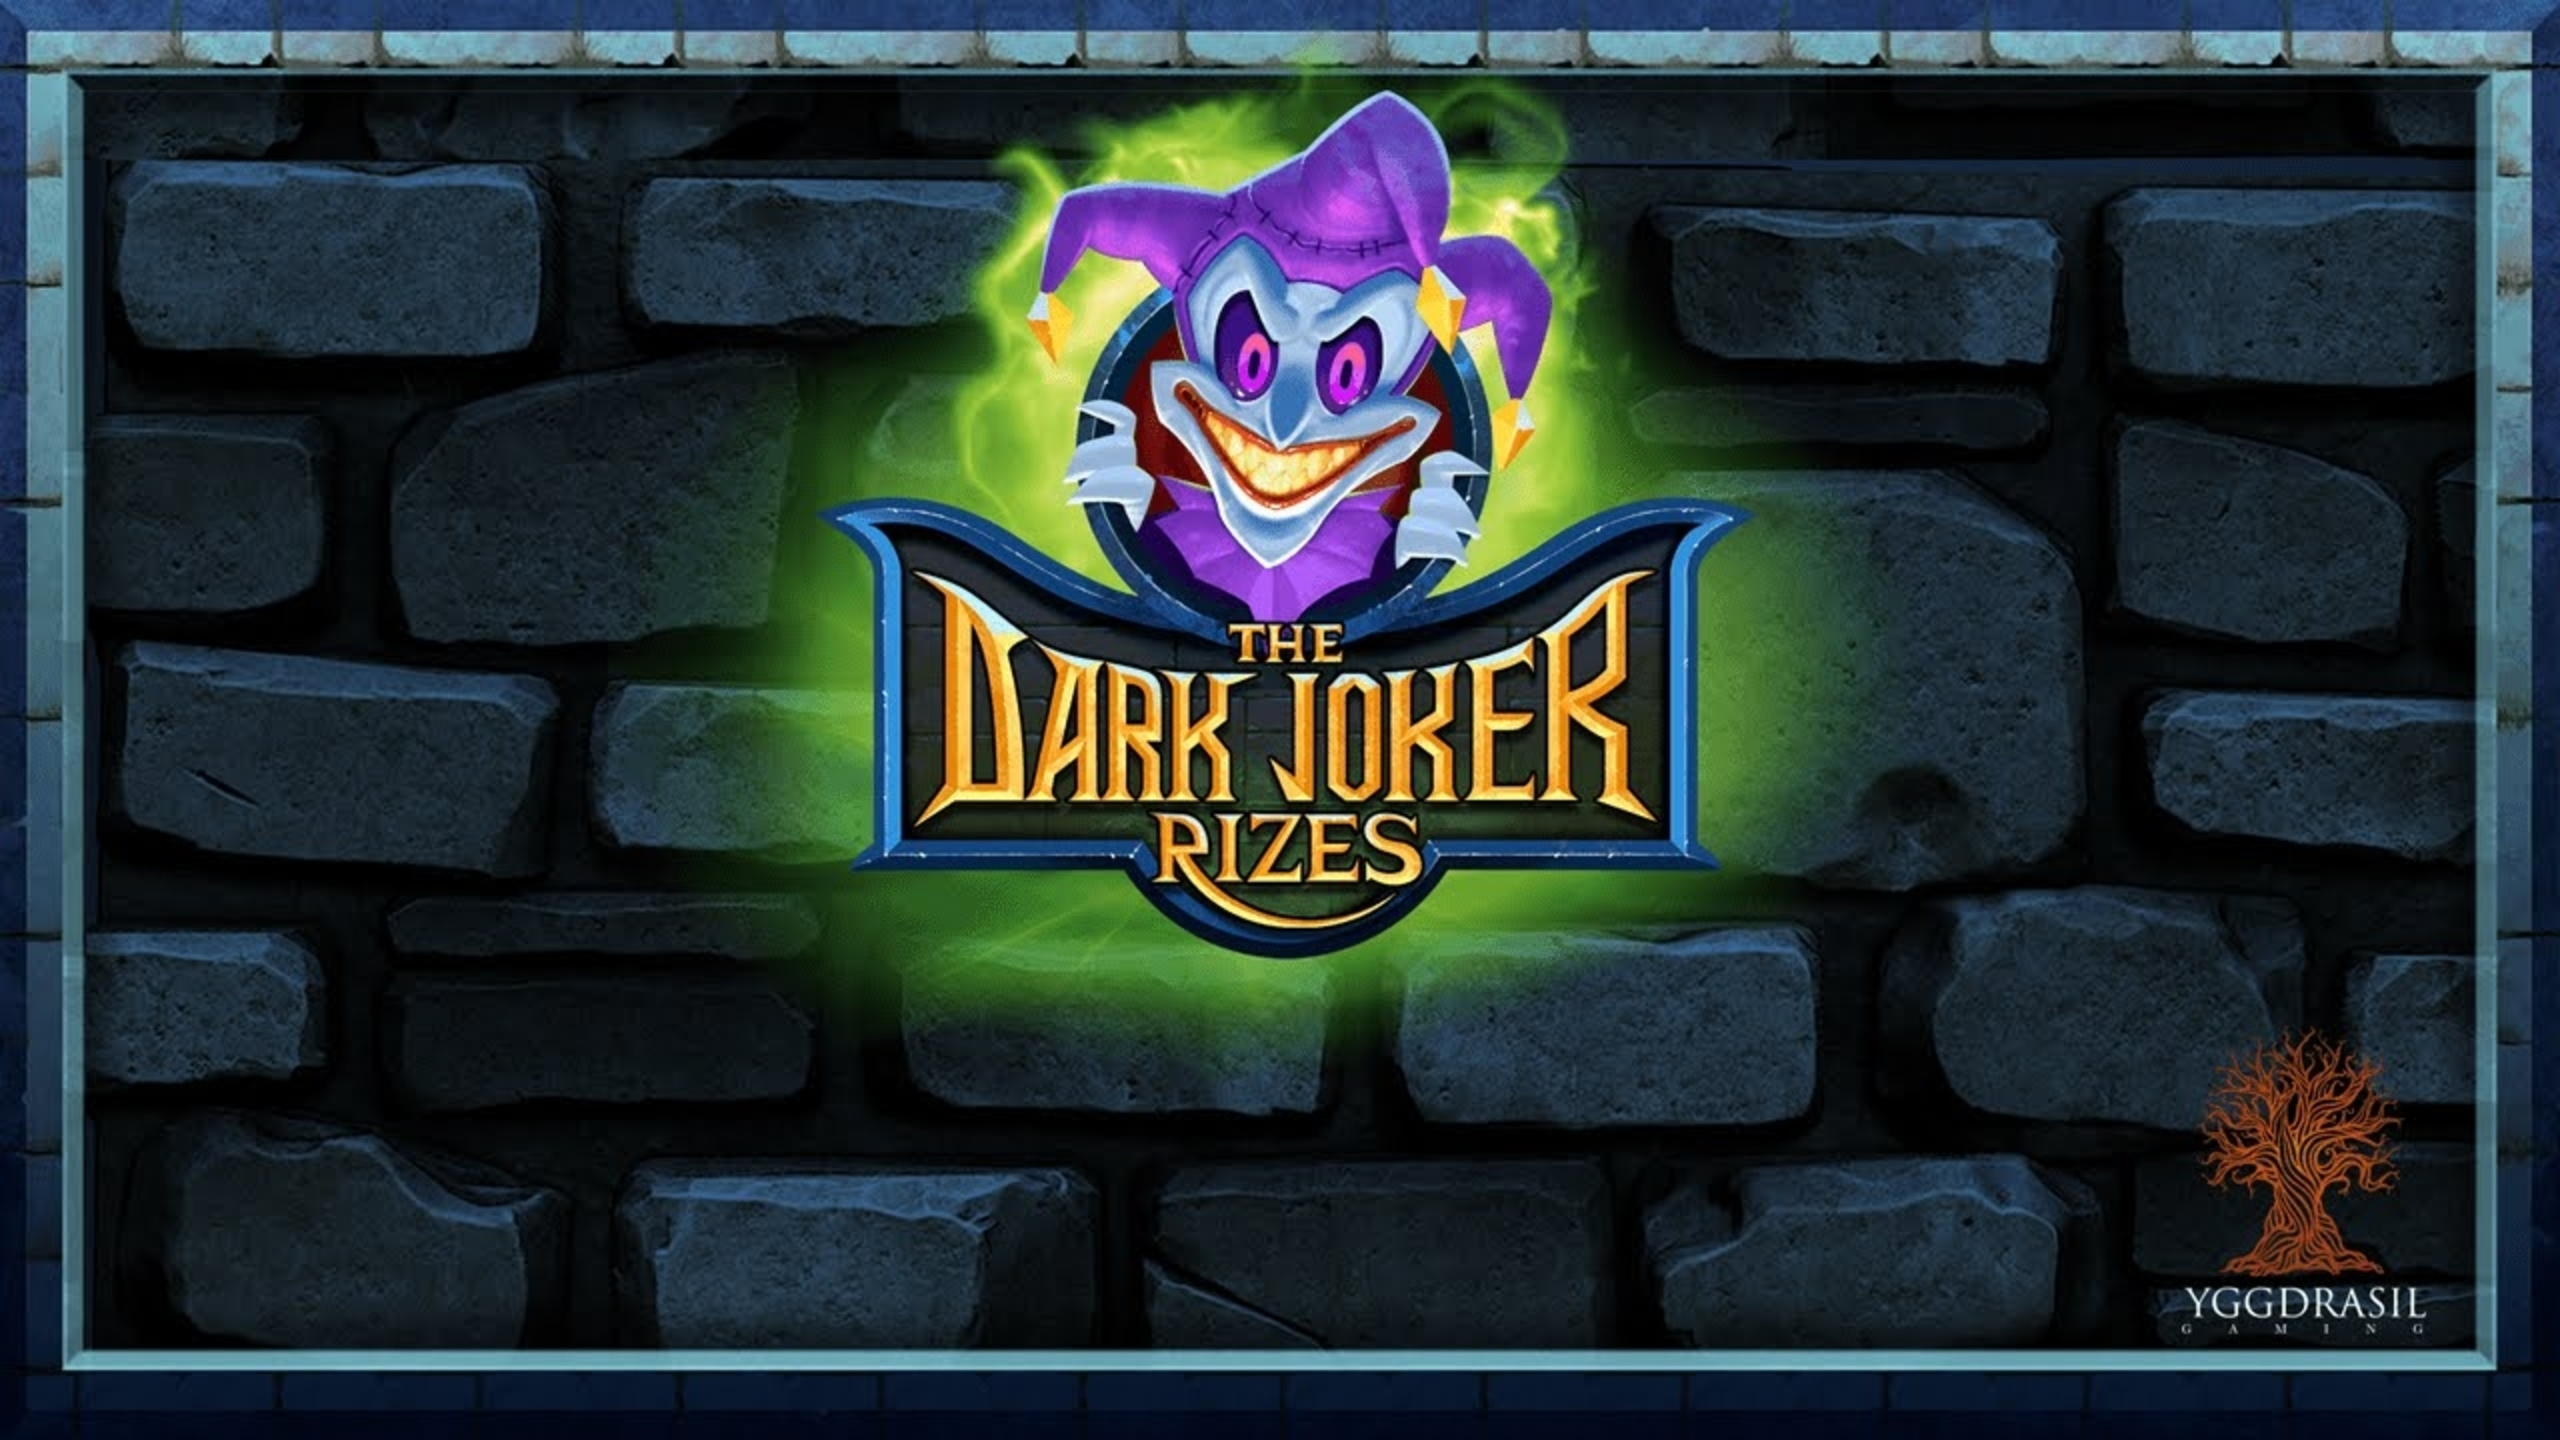 Se The Dark Joker Rizes Online Slot Demo Game, Yggdrasil